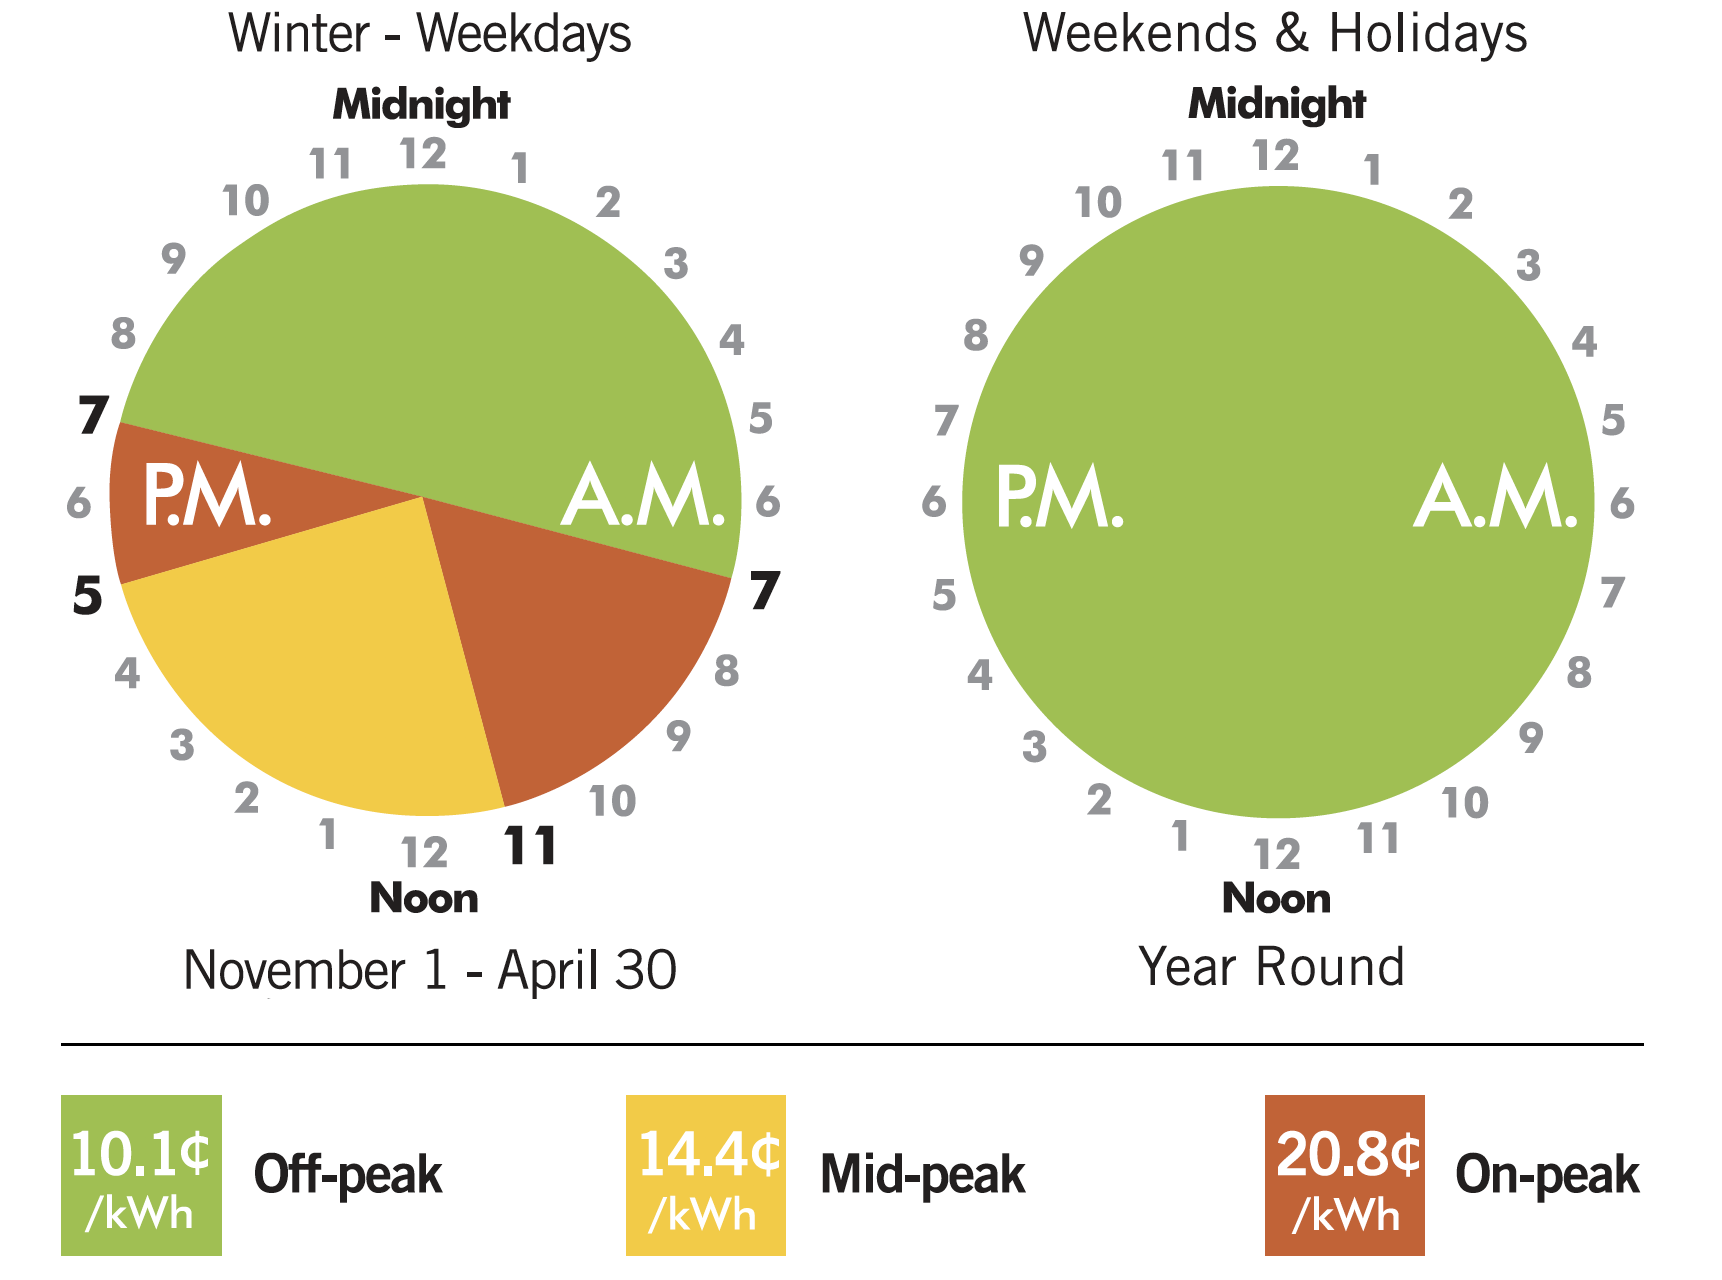 Winter Time of Use prices 10.1 cents off peak 14.4 cents mid-peak 20.8 cents on peak